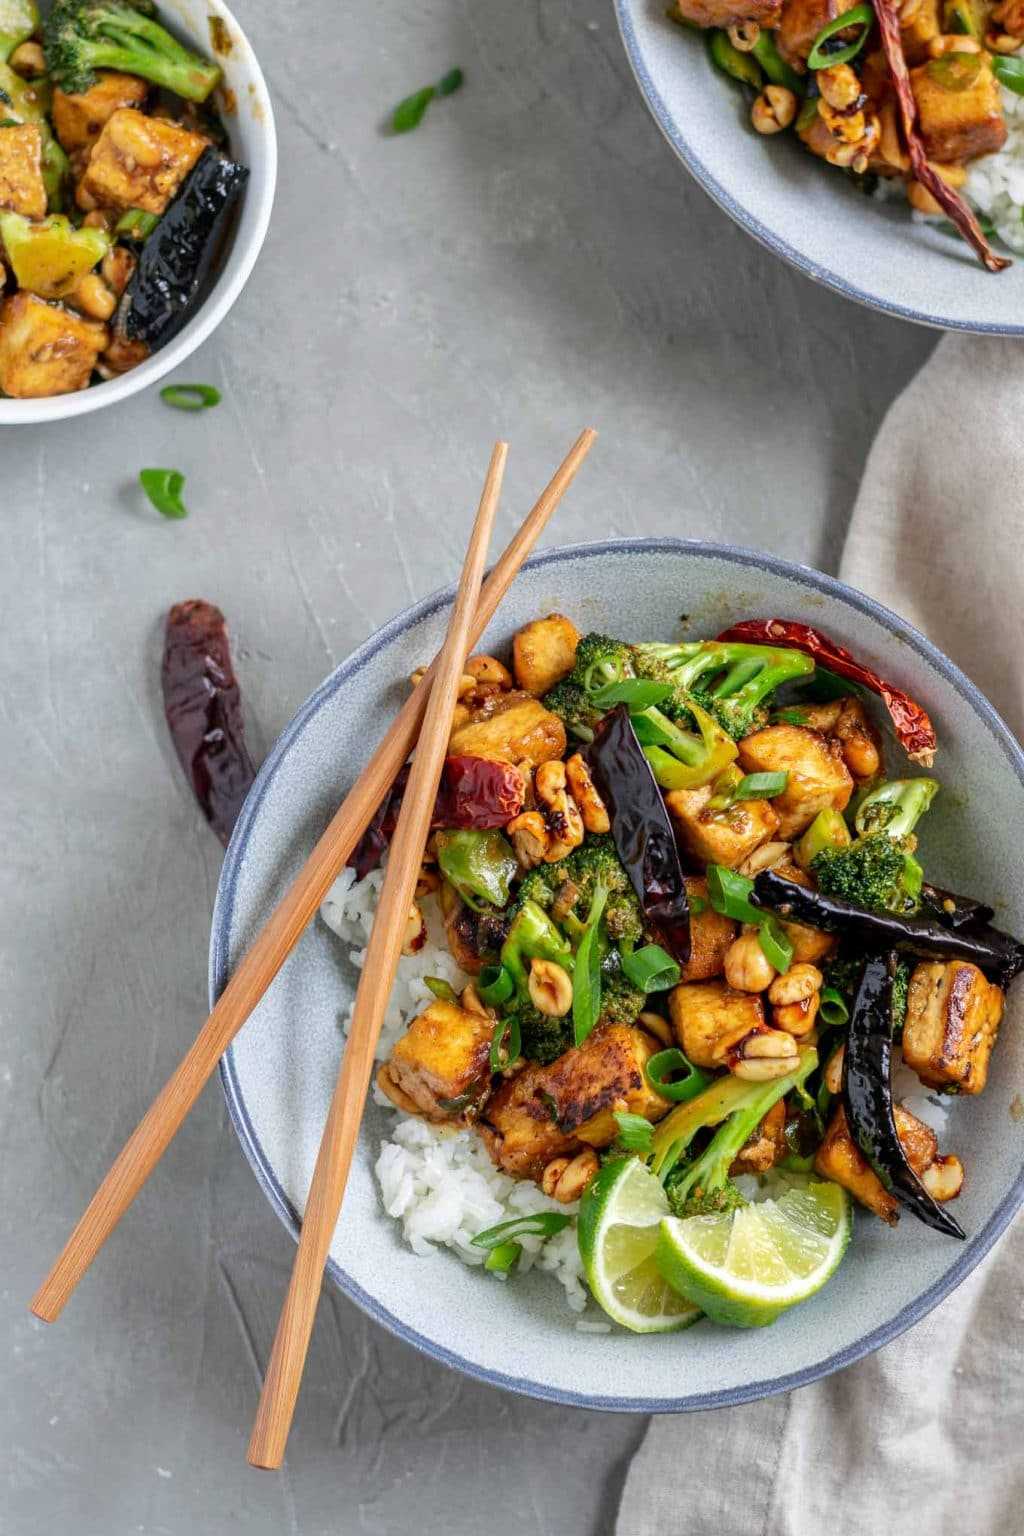 vegan kung pao tofu with broccoli and jasmine rice. Garnished with lime wedges and scallion greens and a pair of chopsticks is set over the bowl